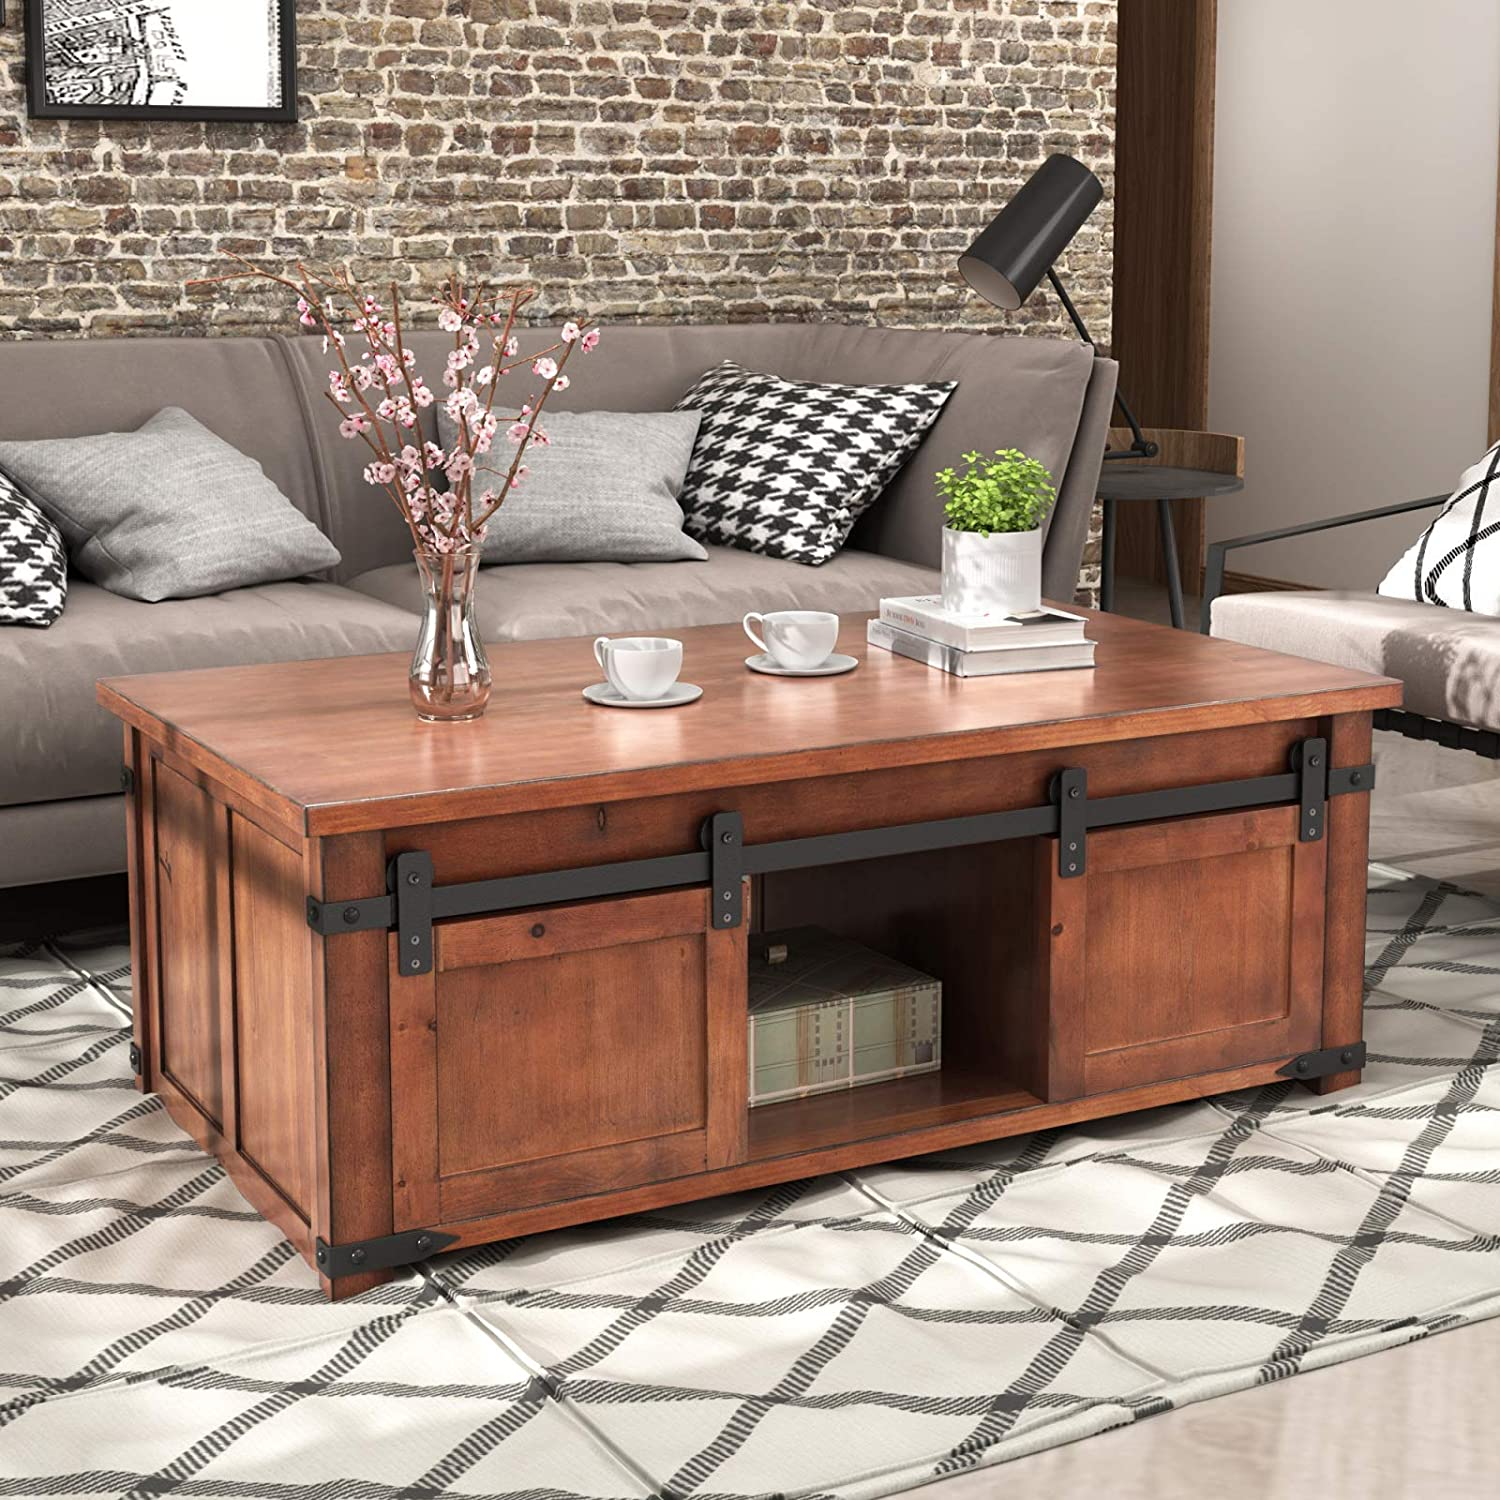 MOOVGTP Coffee Table with Storage and Purchase Cabinets Max 82% OFF Shelf Industrial